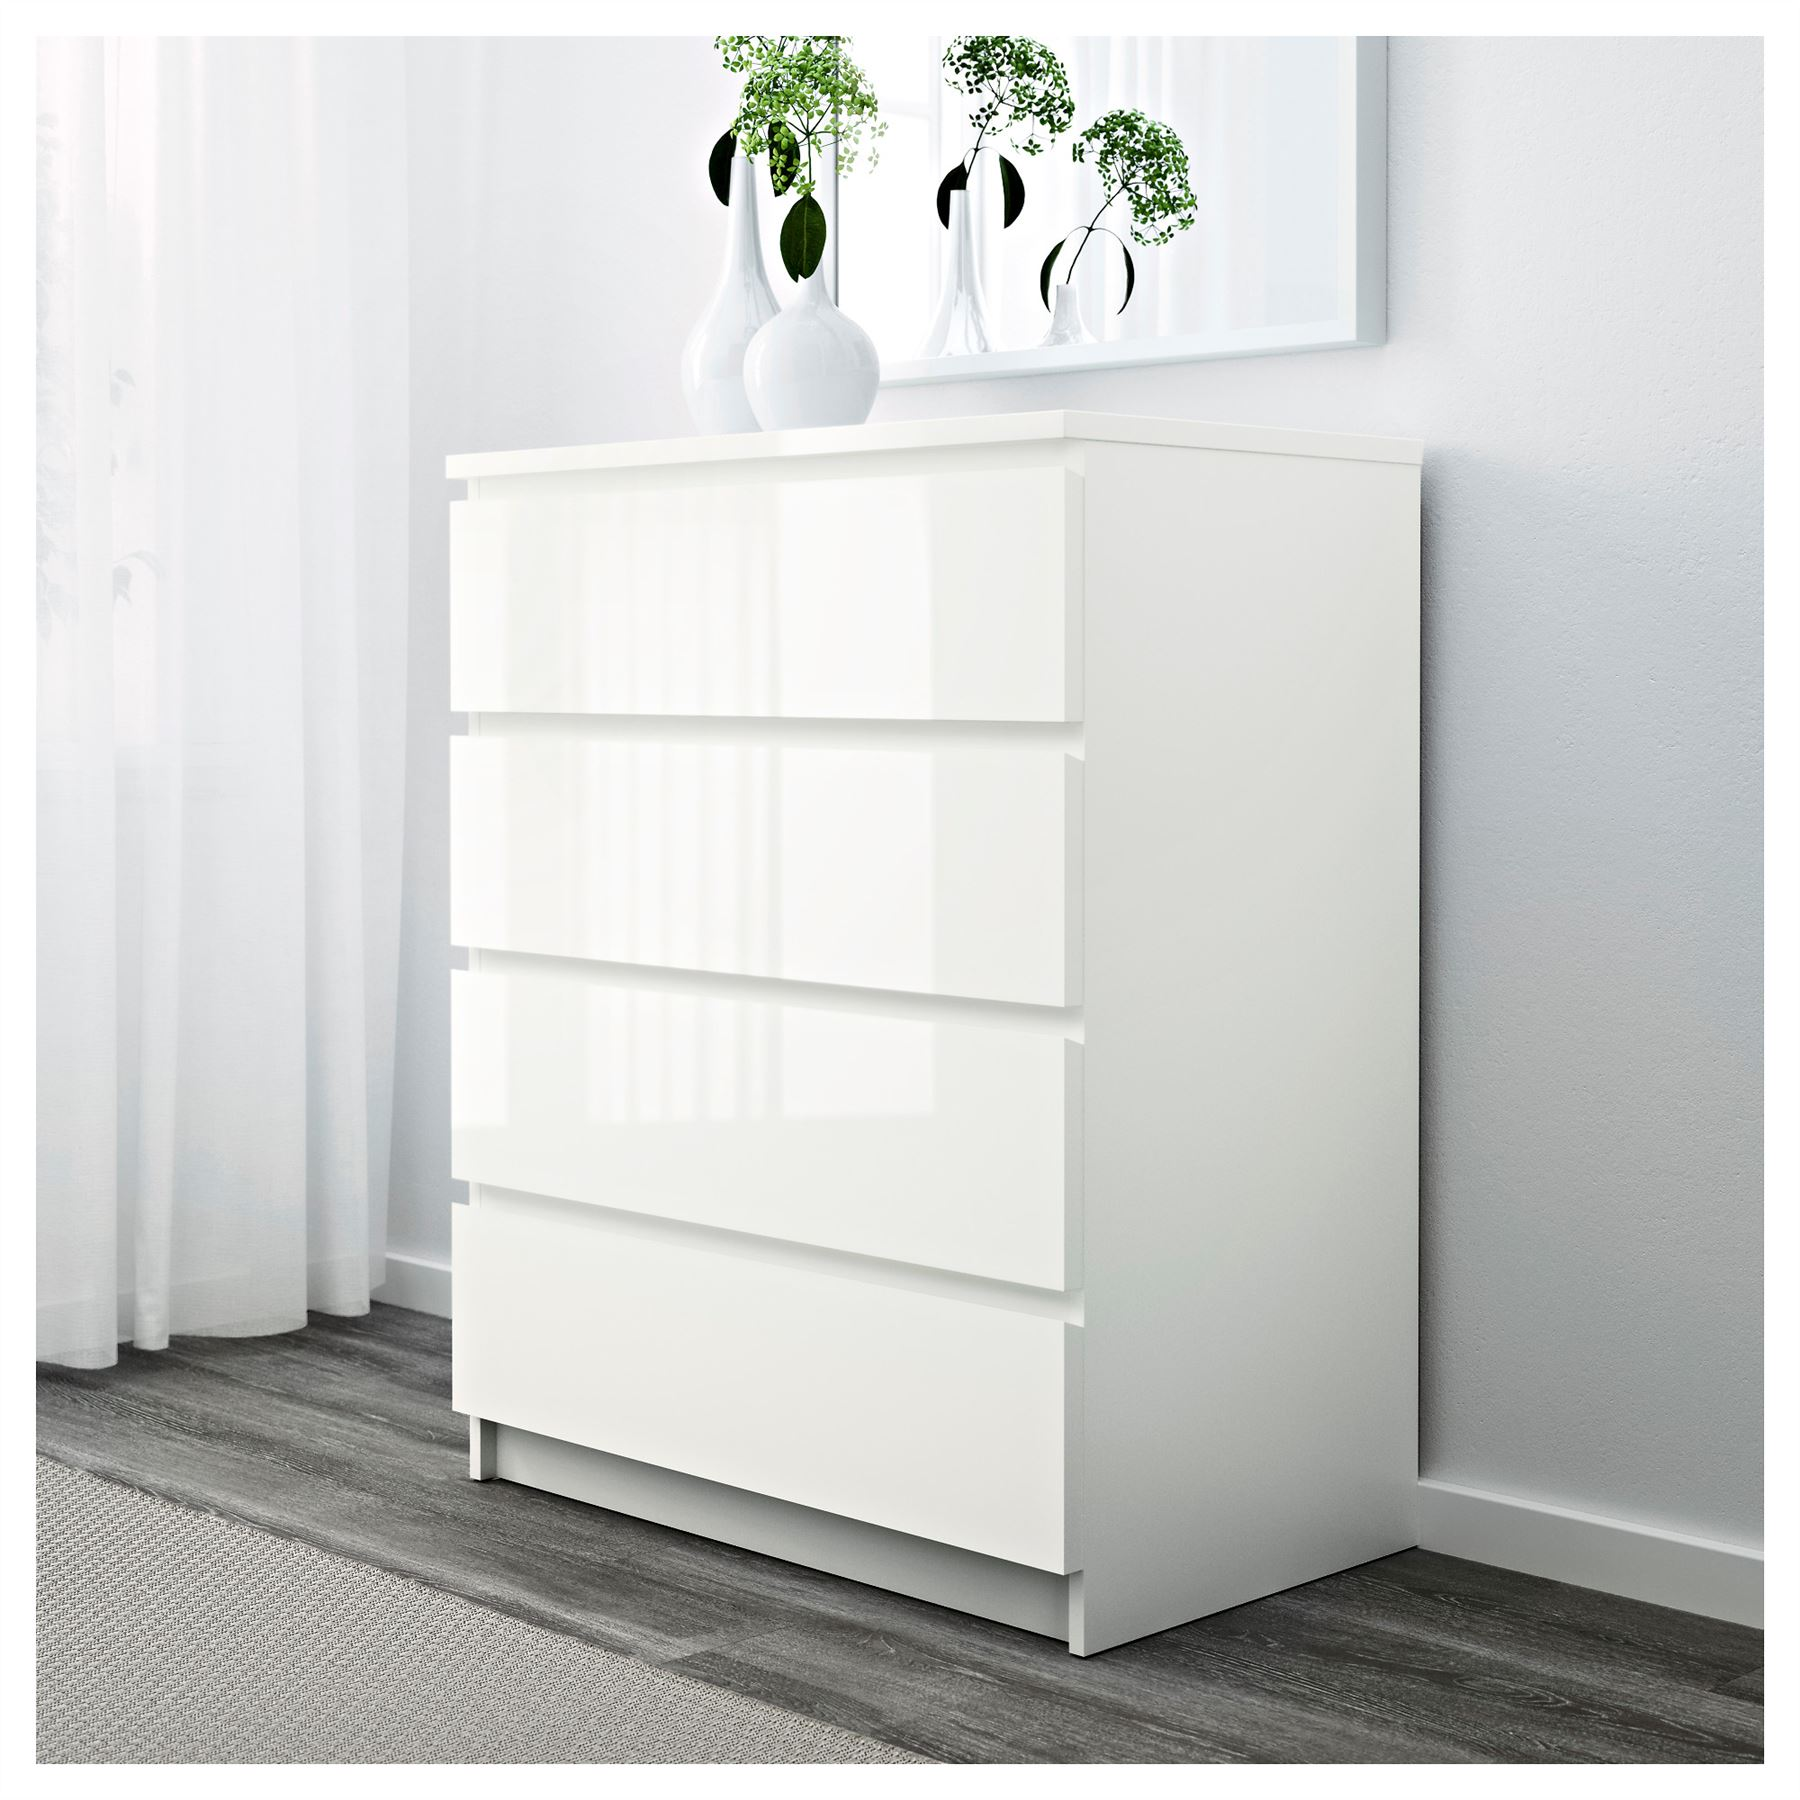 Ikea malm chest of 4 drawers 80x100cm white high gloss for White high gloss bedroom furniture